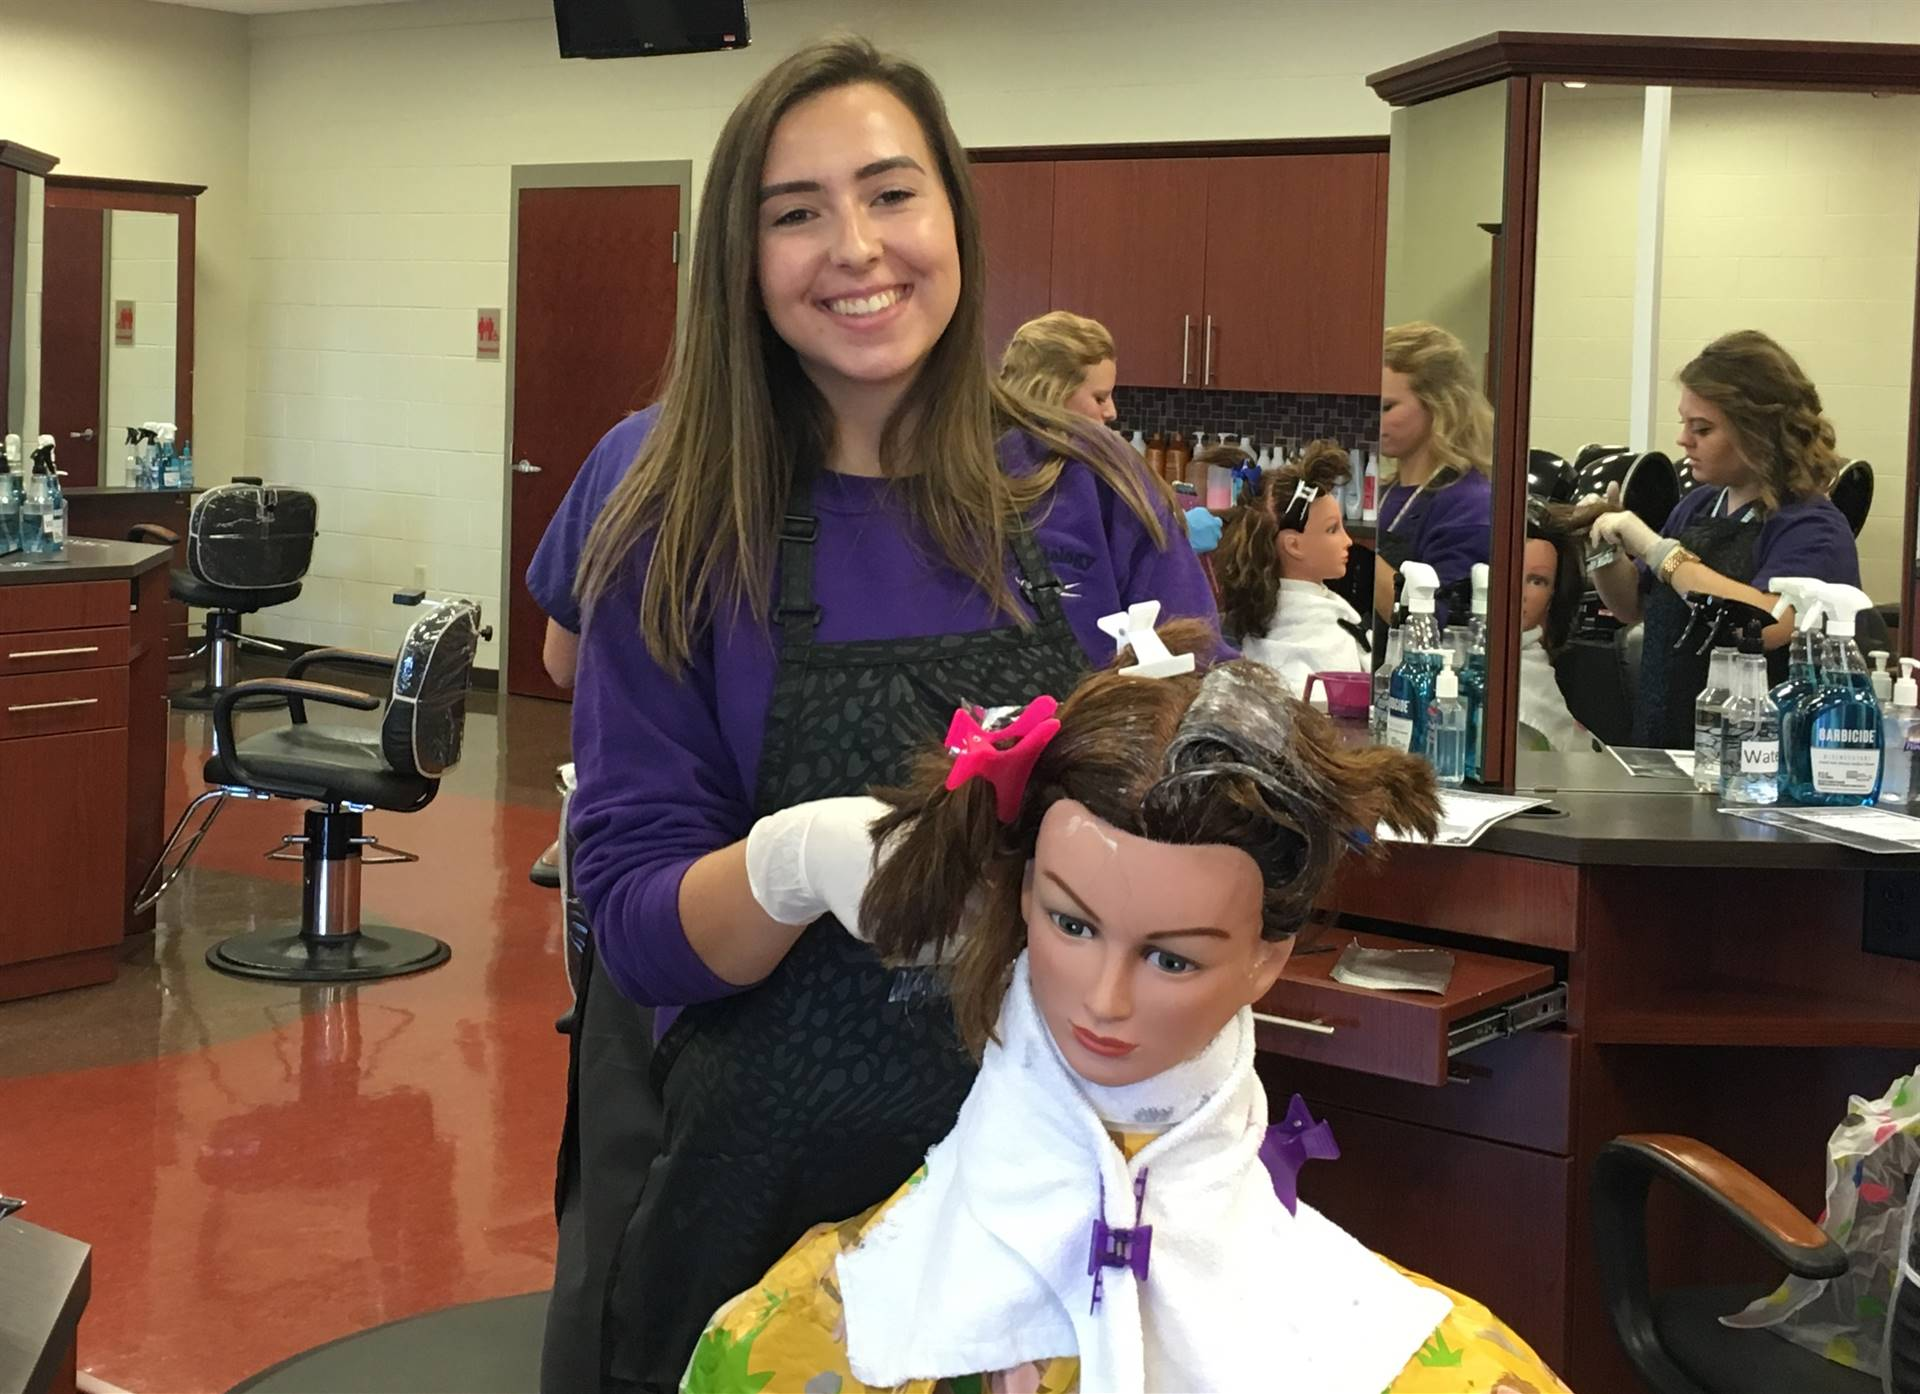 Smiling female Cosmetology student working on a mannequin